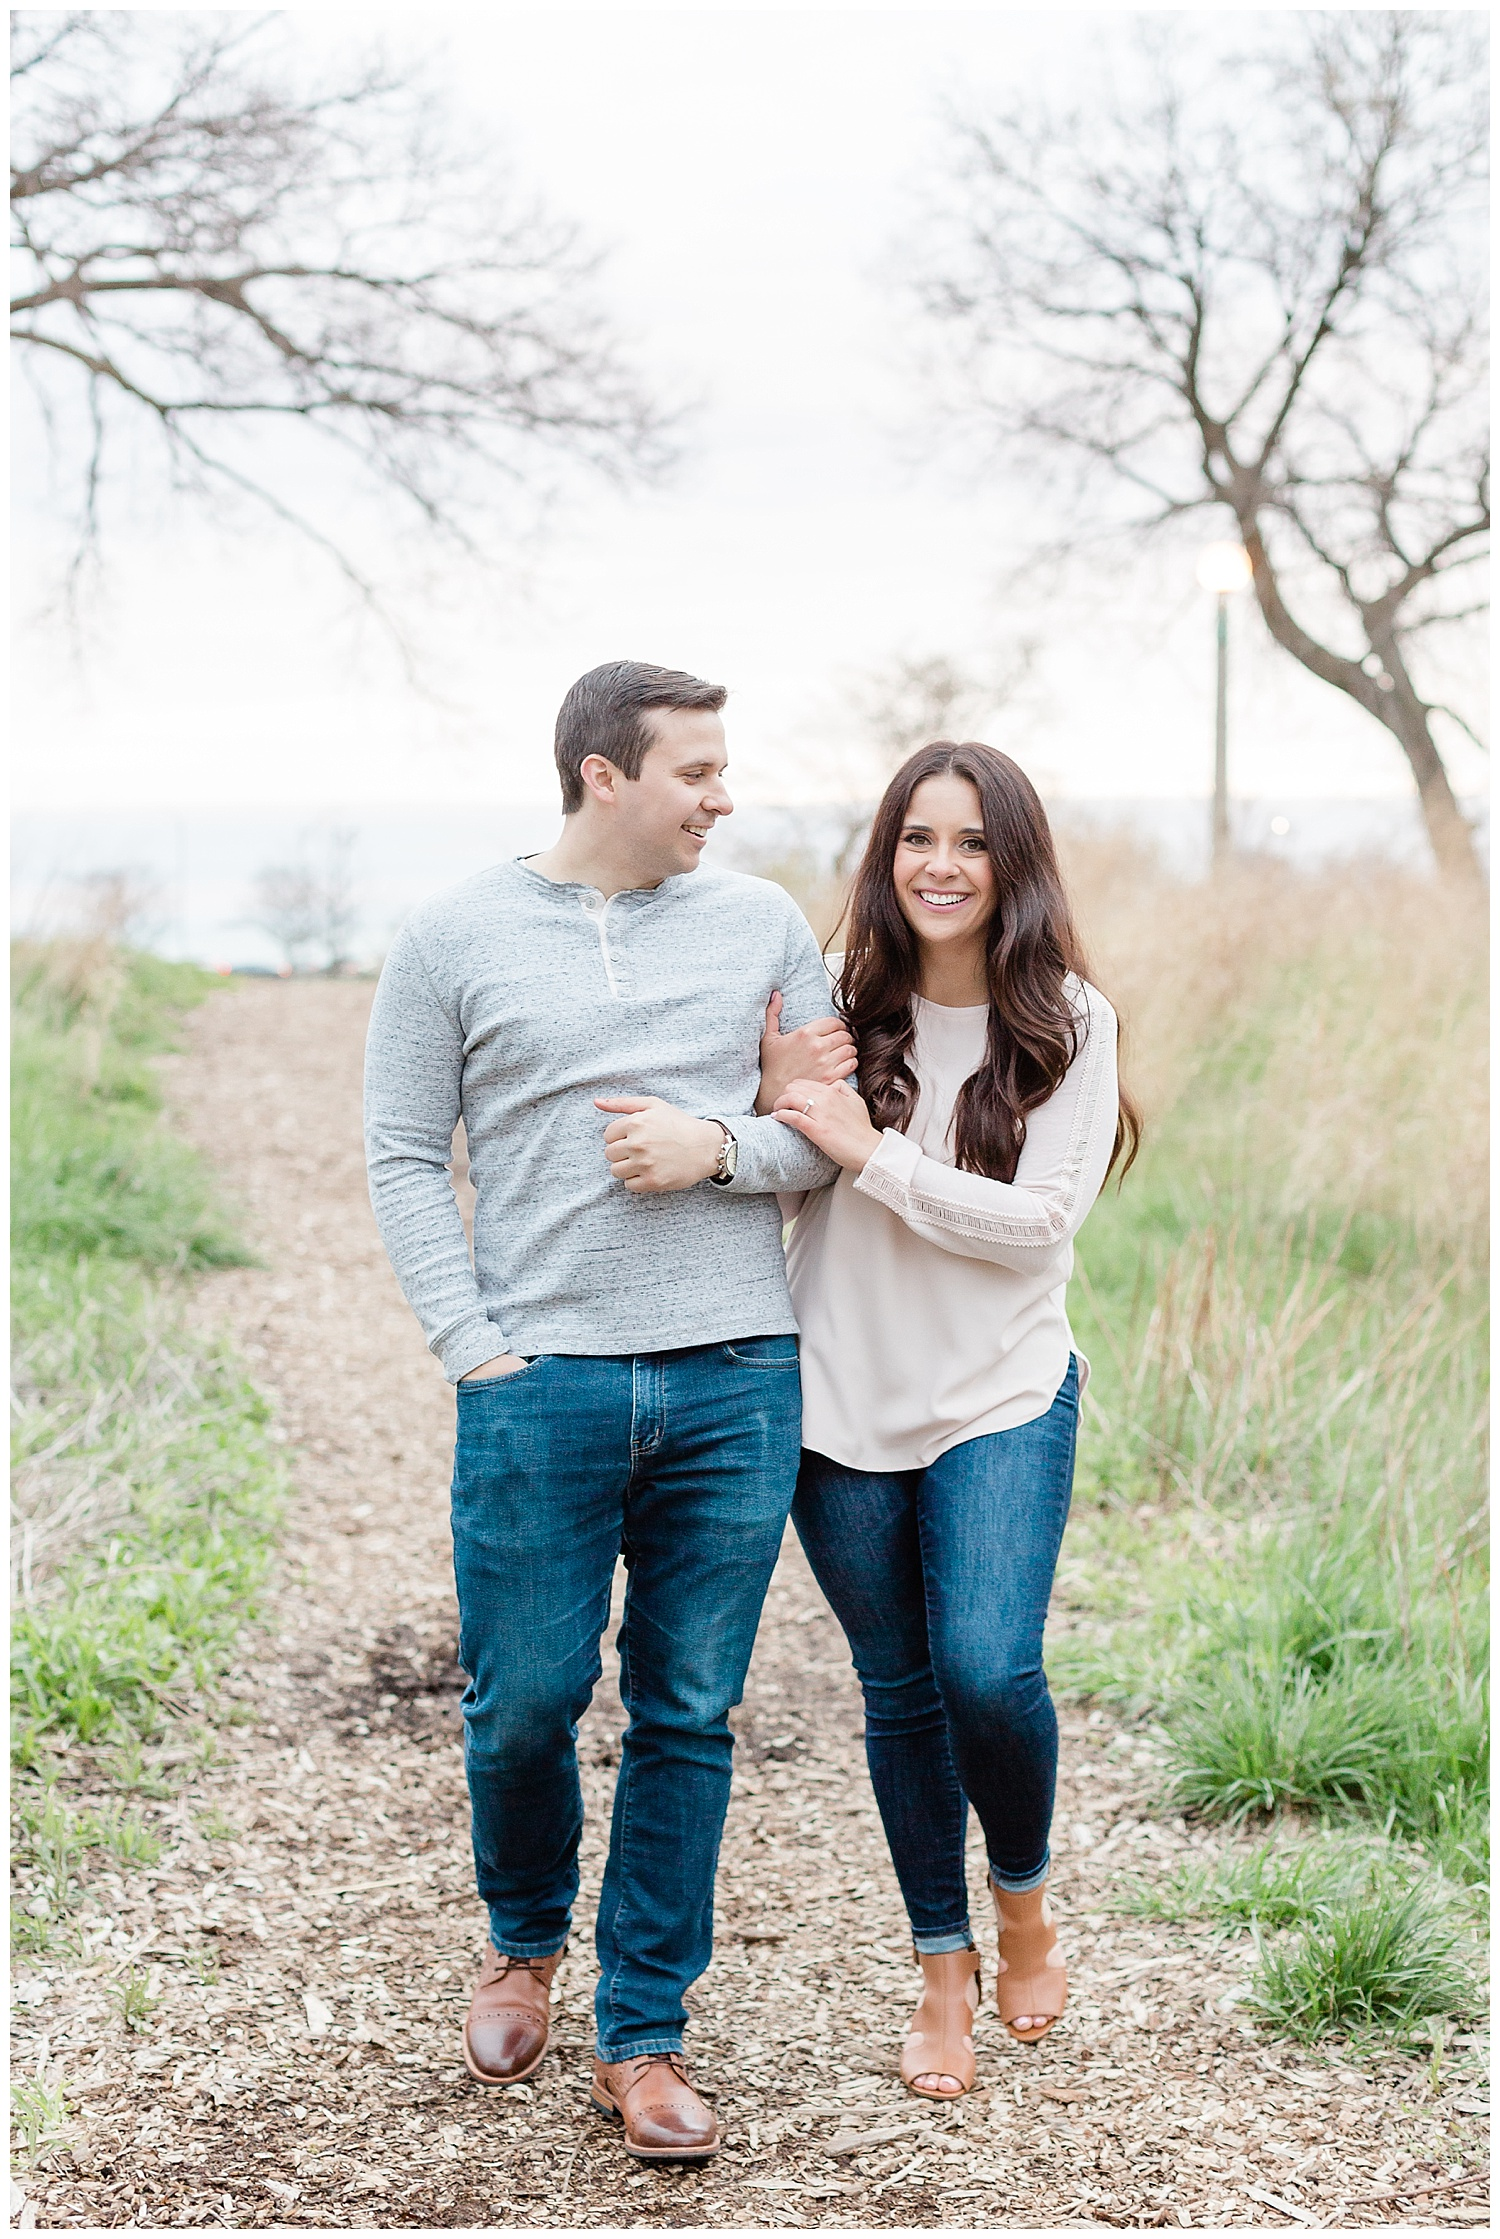 classic-downtown-chicago-engagement-session-kristen-cloyd-photography_0023.jpg